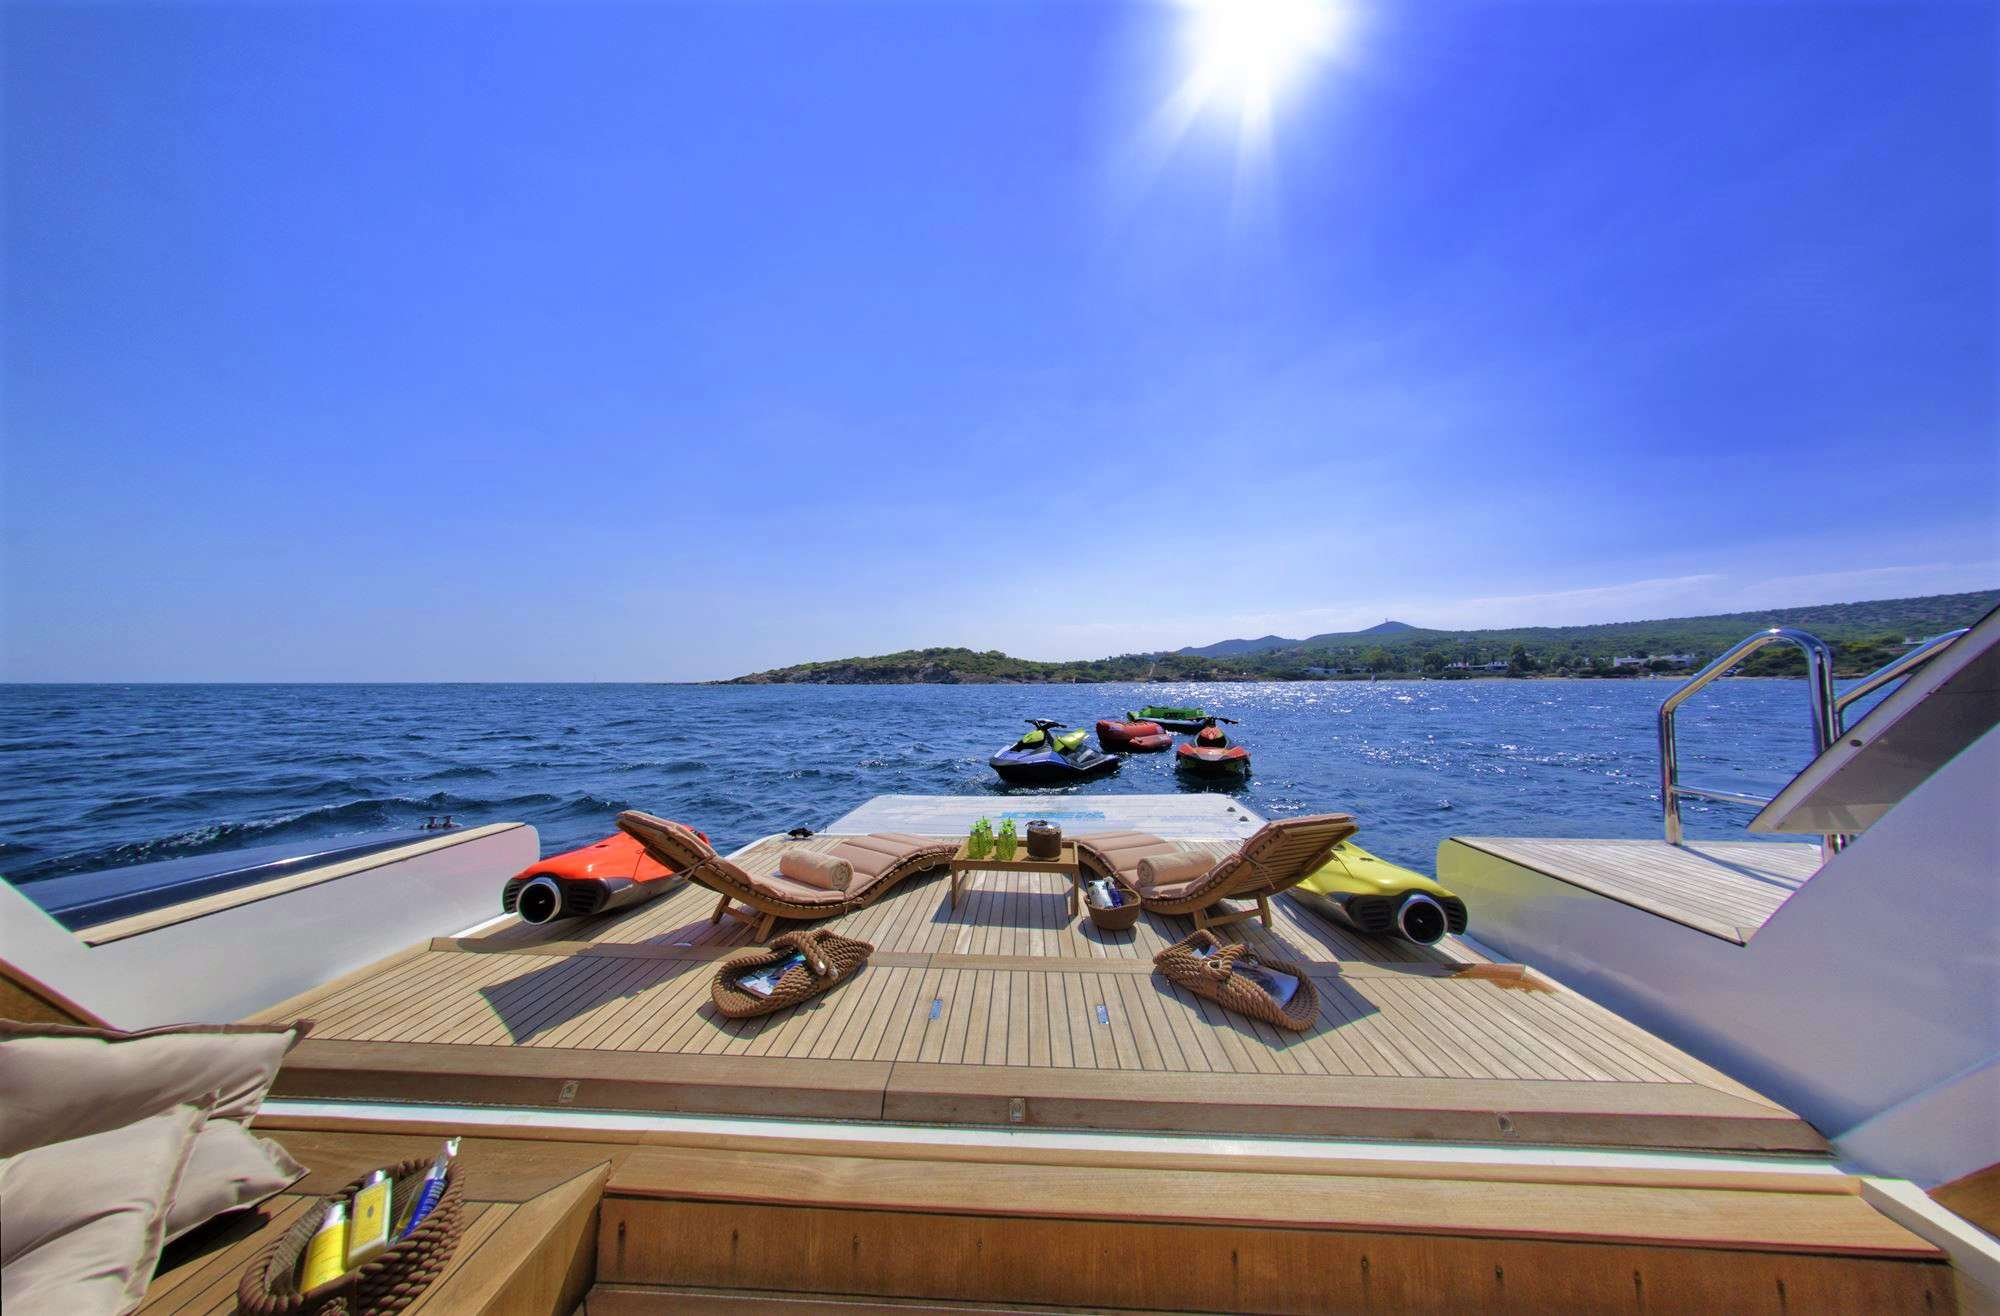 Beach Club (32 sq.m) with Sauna, Shower, Gym Equipment, Swimming Platform & Floating Island